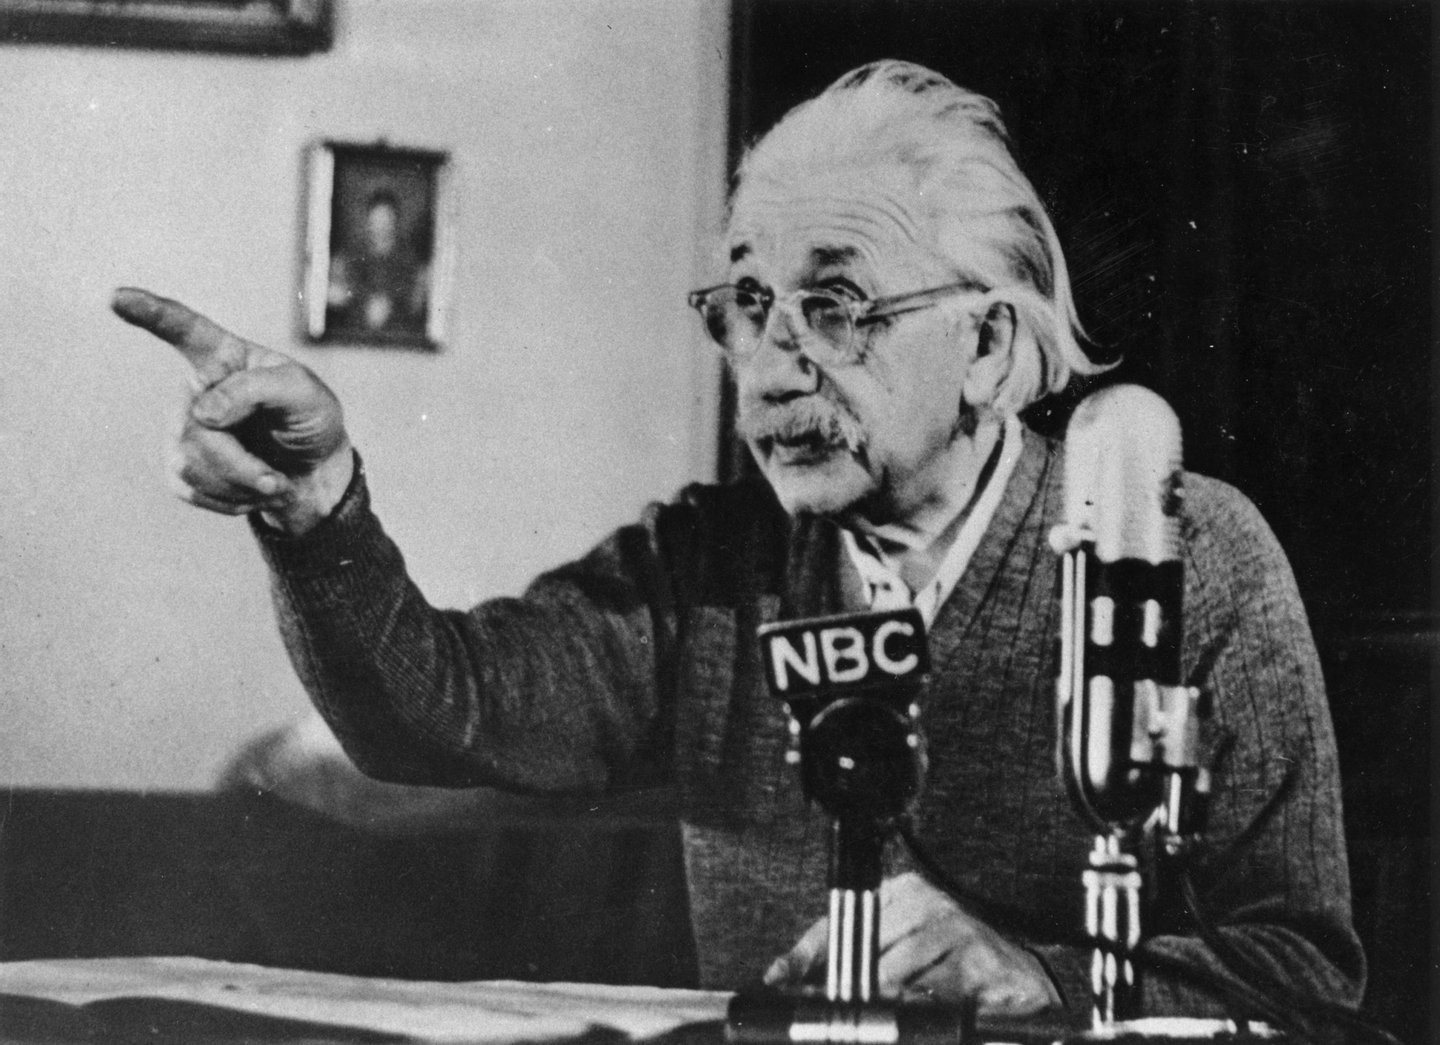 circa 1955:  Mathematical physicist Albert Einstein (1879 - 1955) delivers one of his recorded lectures.  (Photo by Keystone/Getty Images)